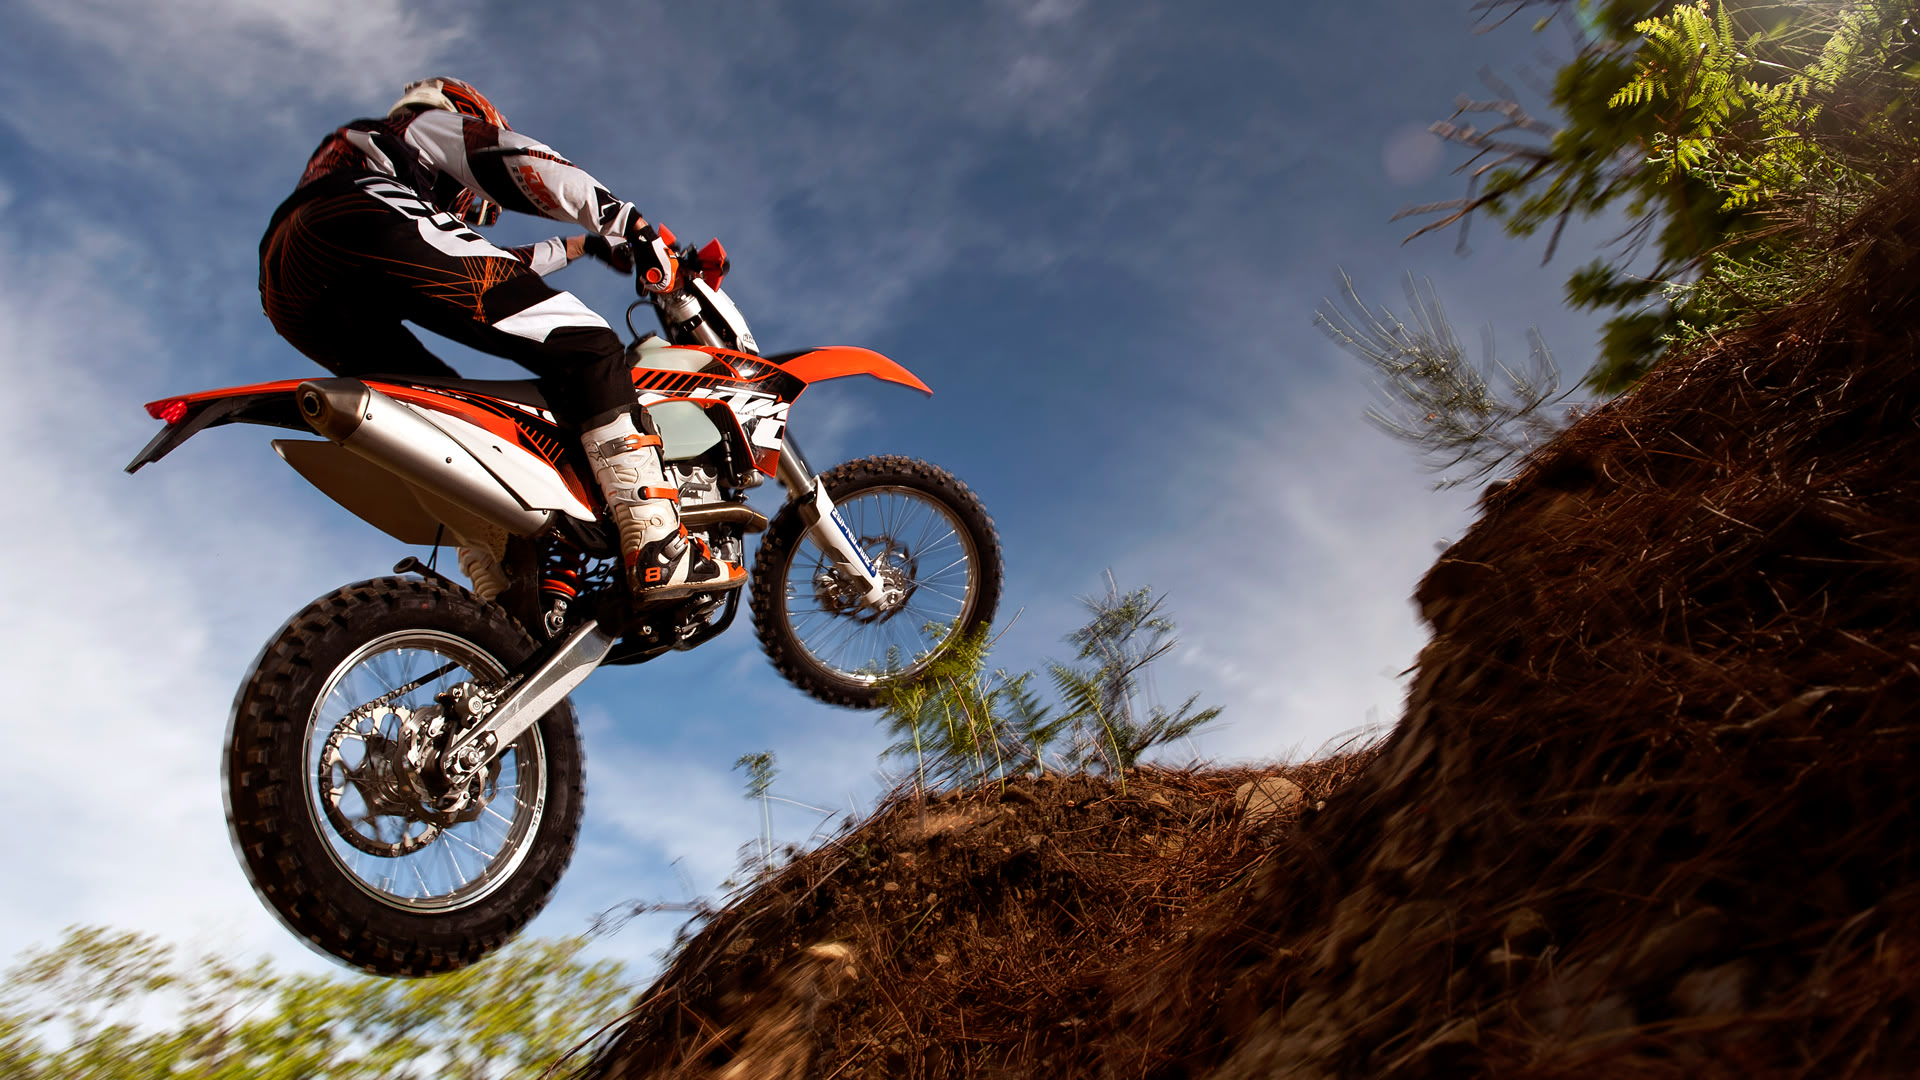 Awesome KTM Wallpaper 2262